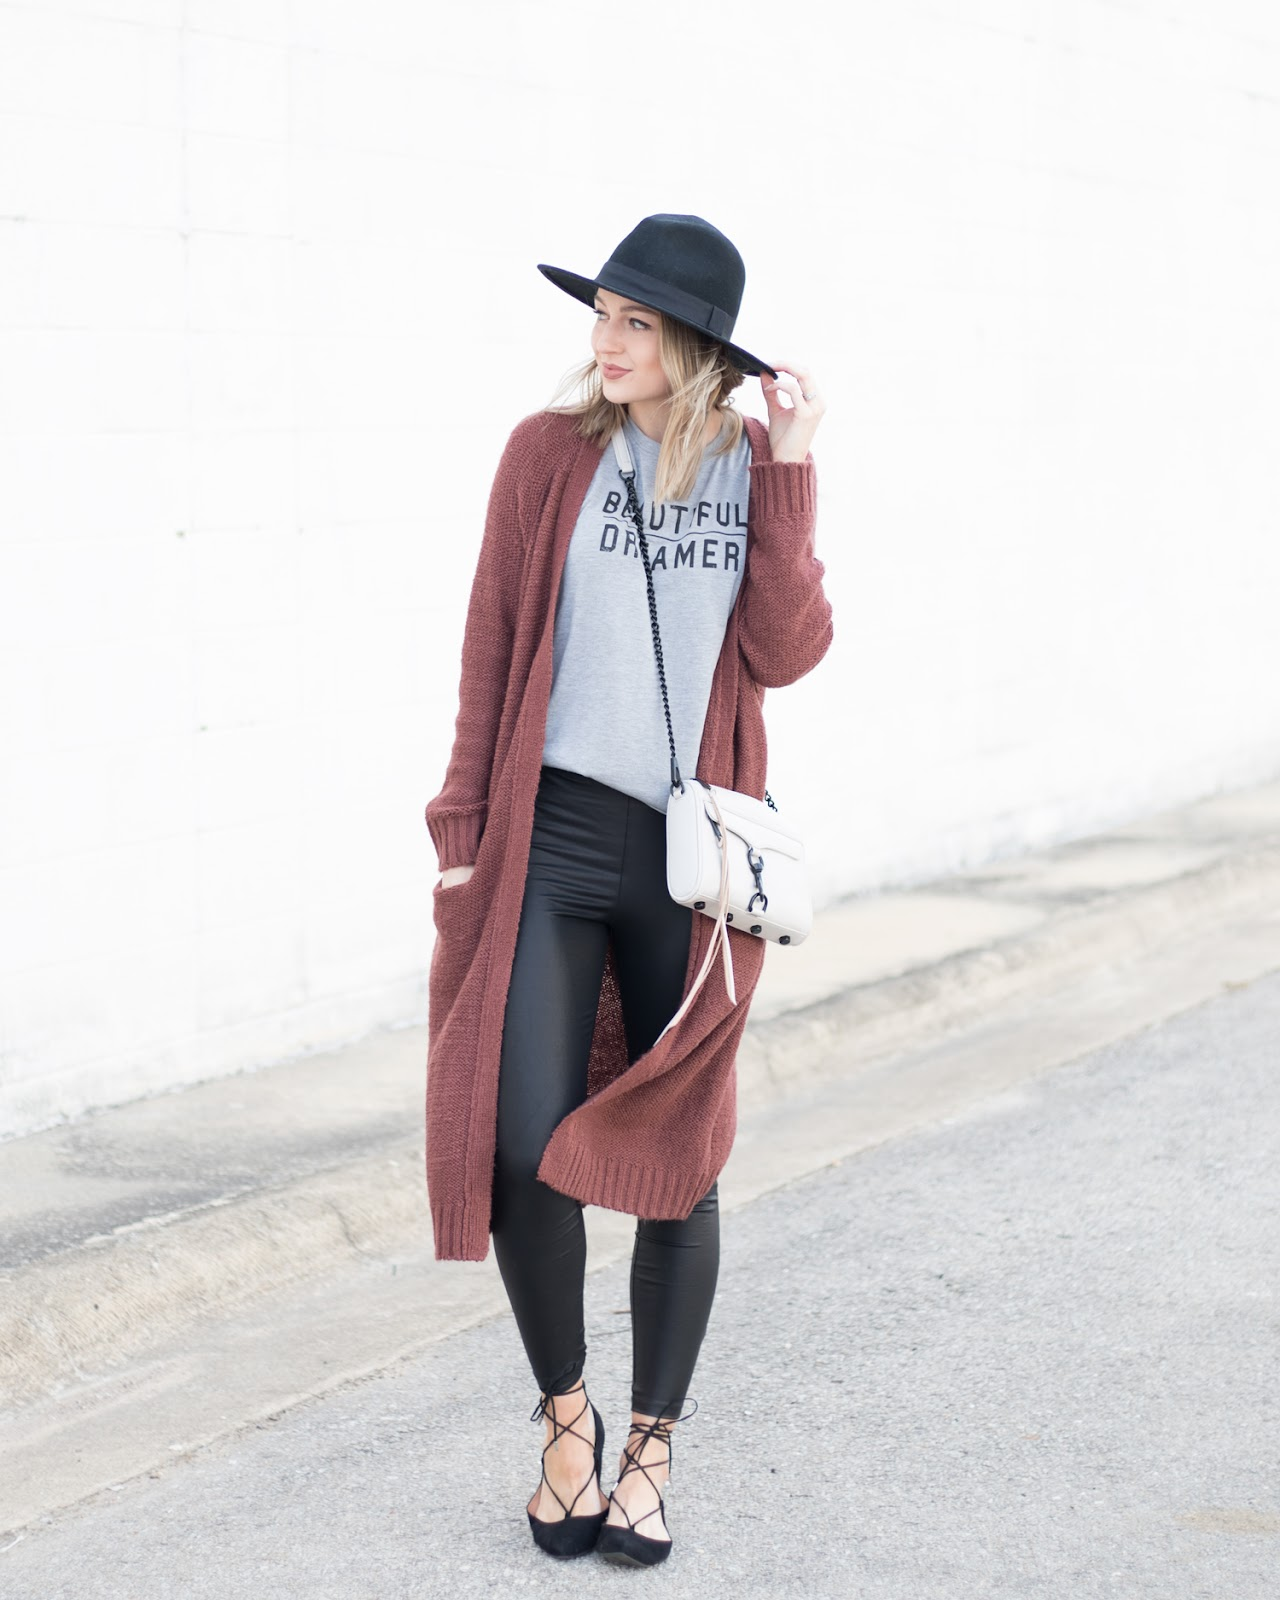 Duster cardigan + leather leggings